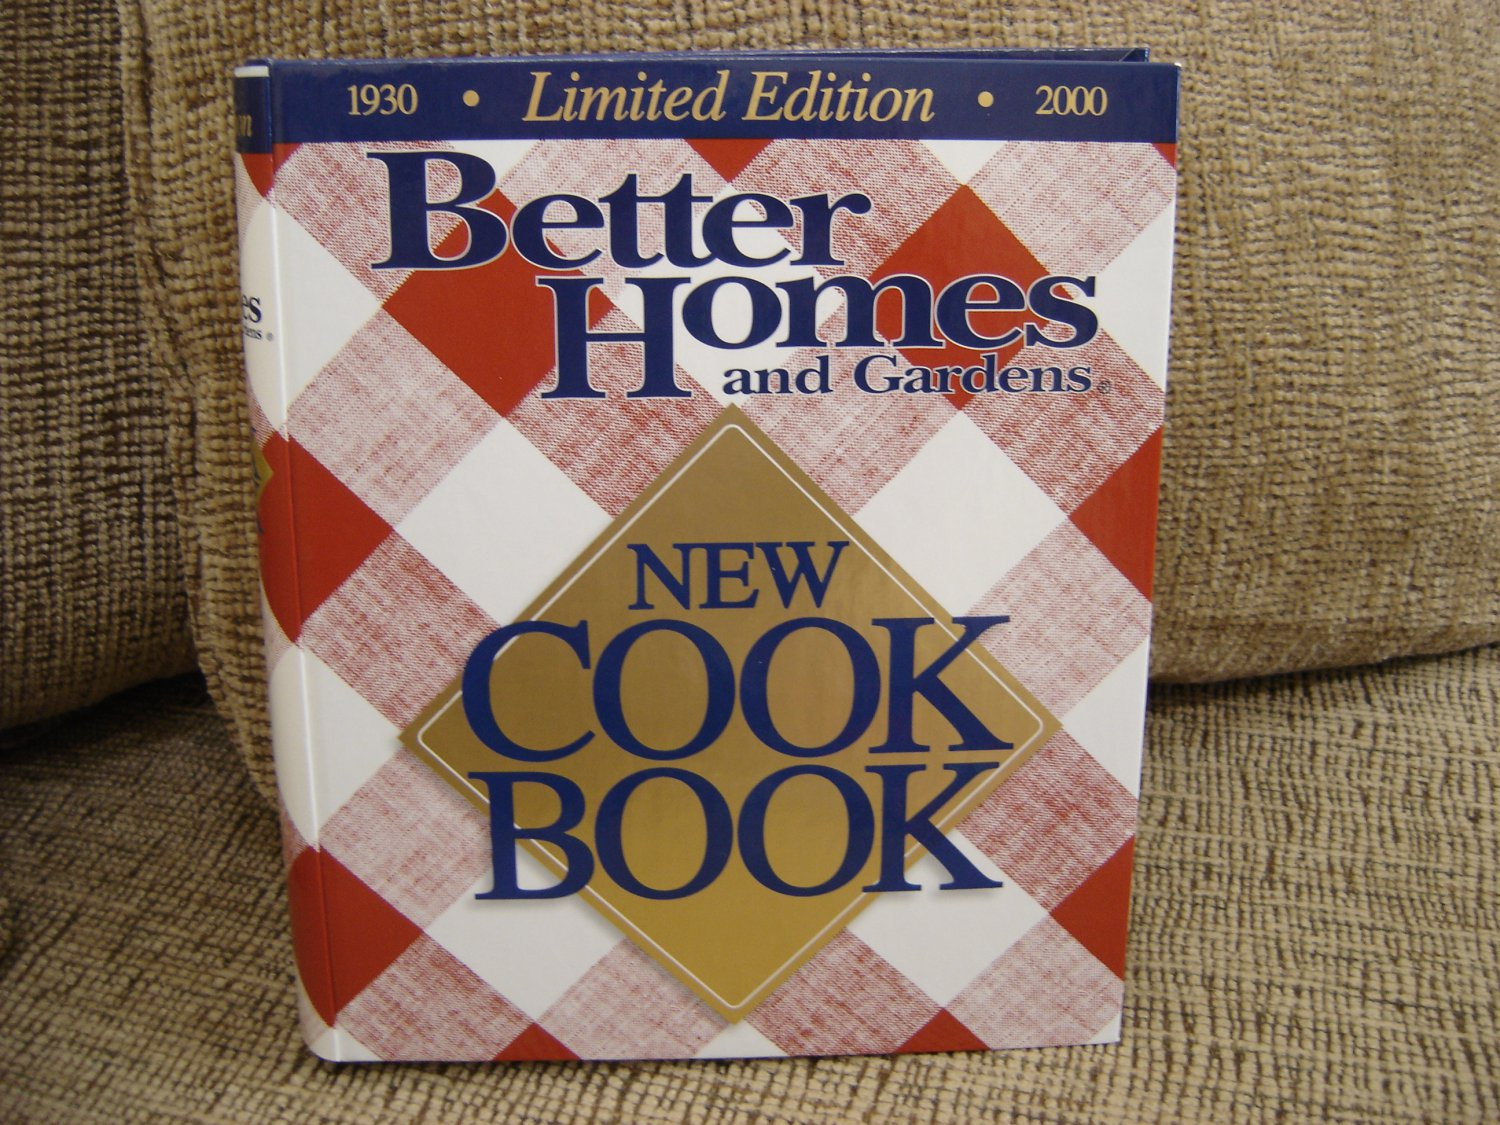 Better Homes And Gardens New Cookbook 1930 2000 Limited Edition Hardcover Brand New